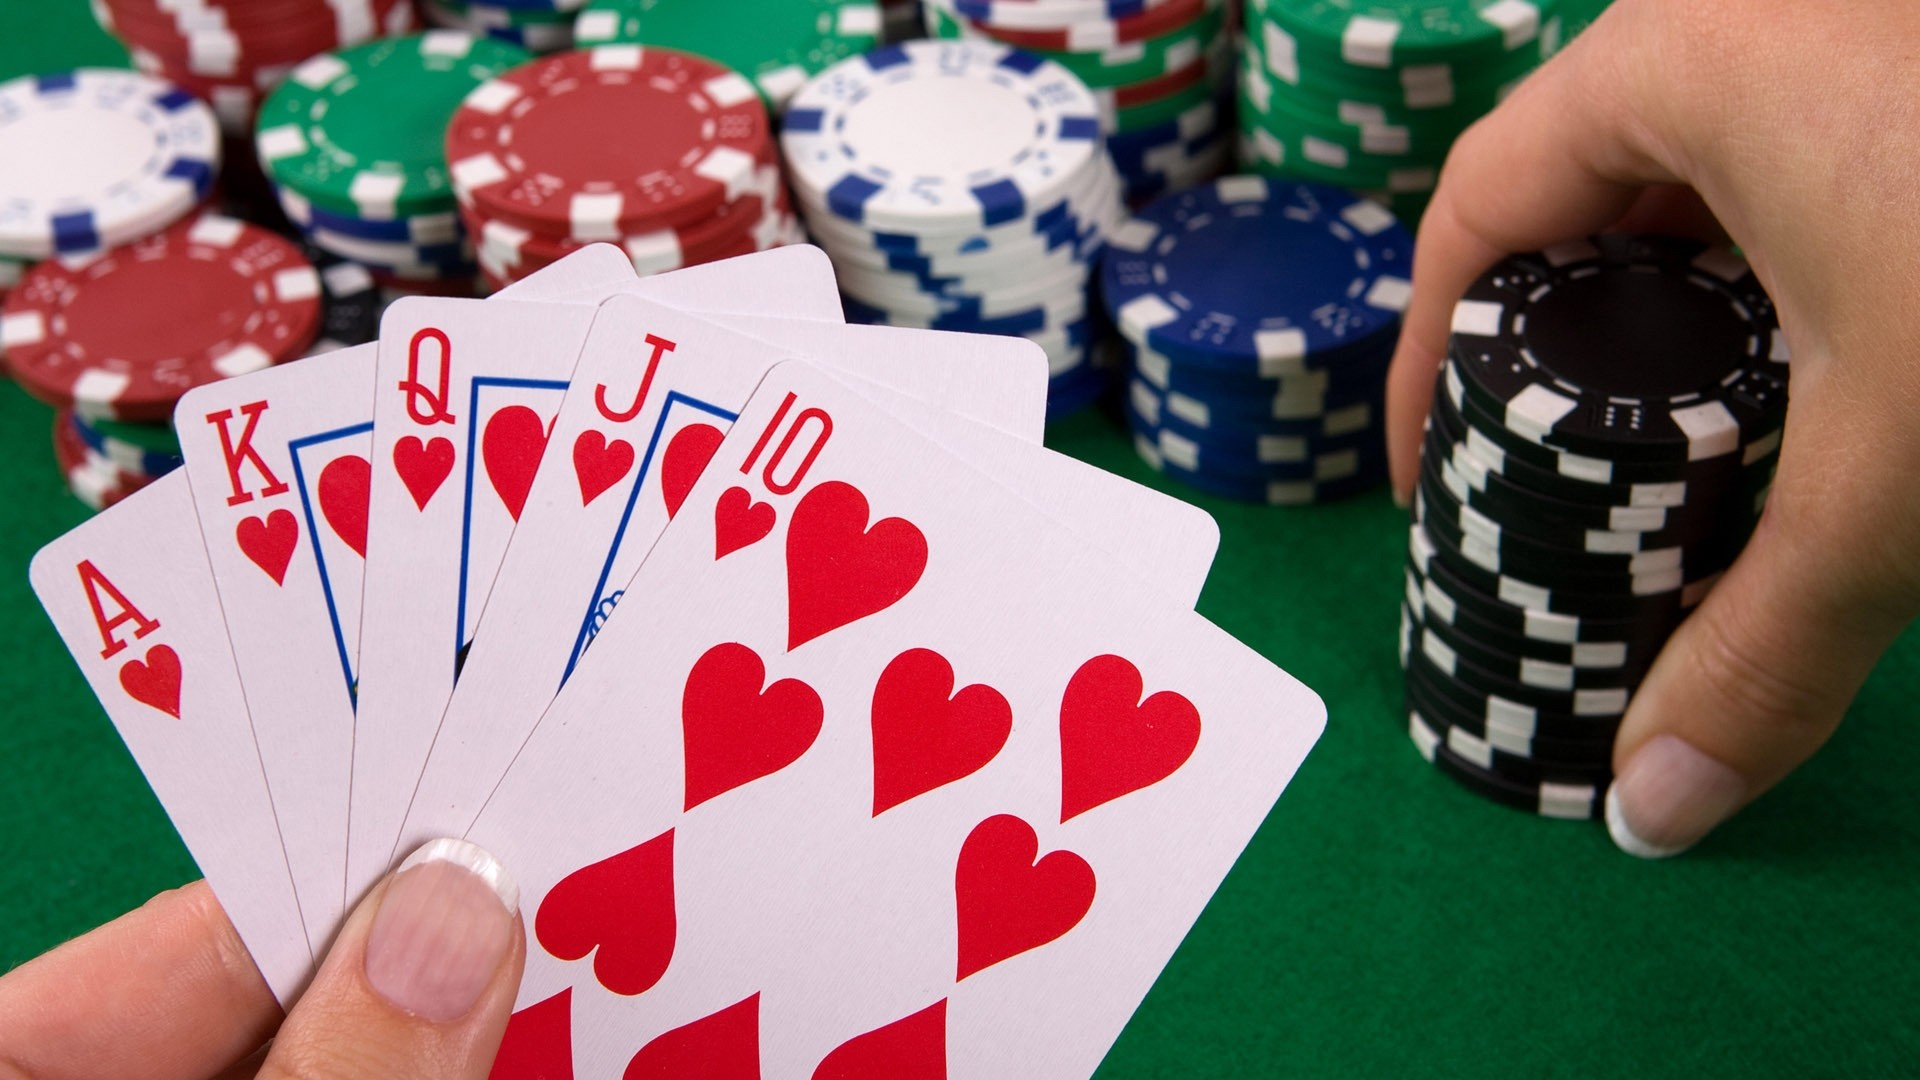 Conversation around the versions in the poker online game